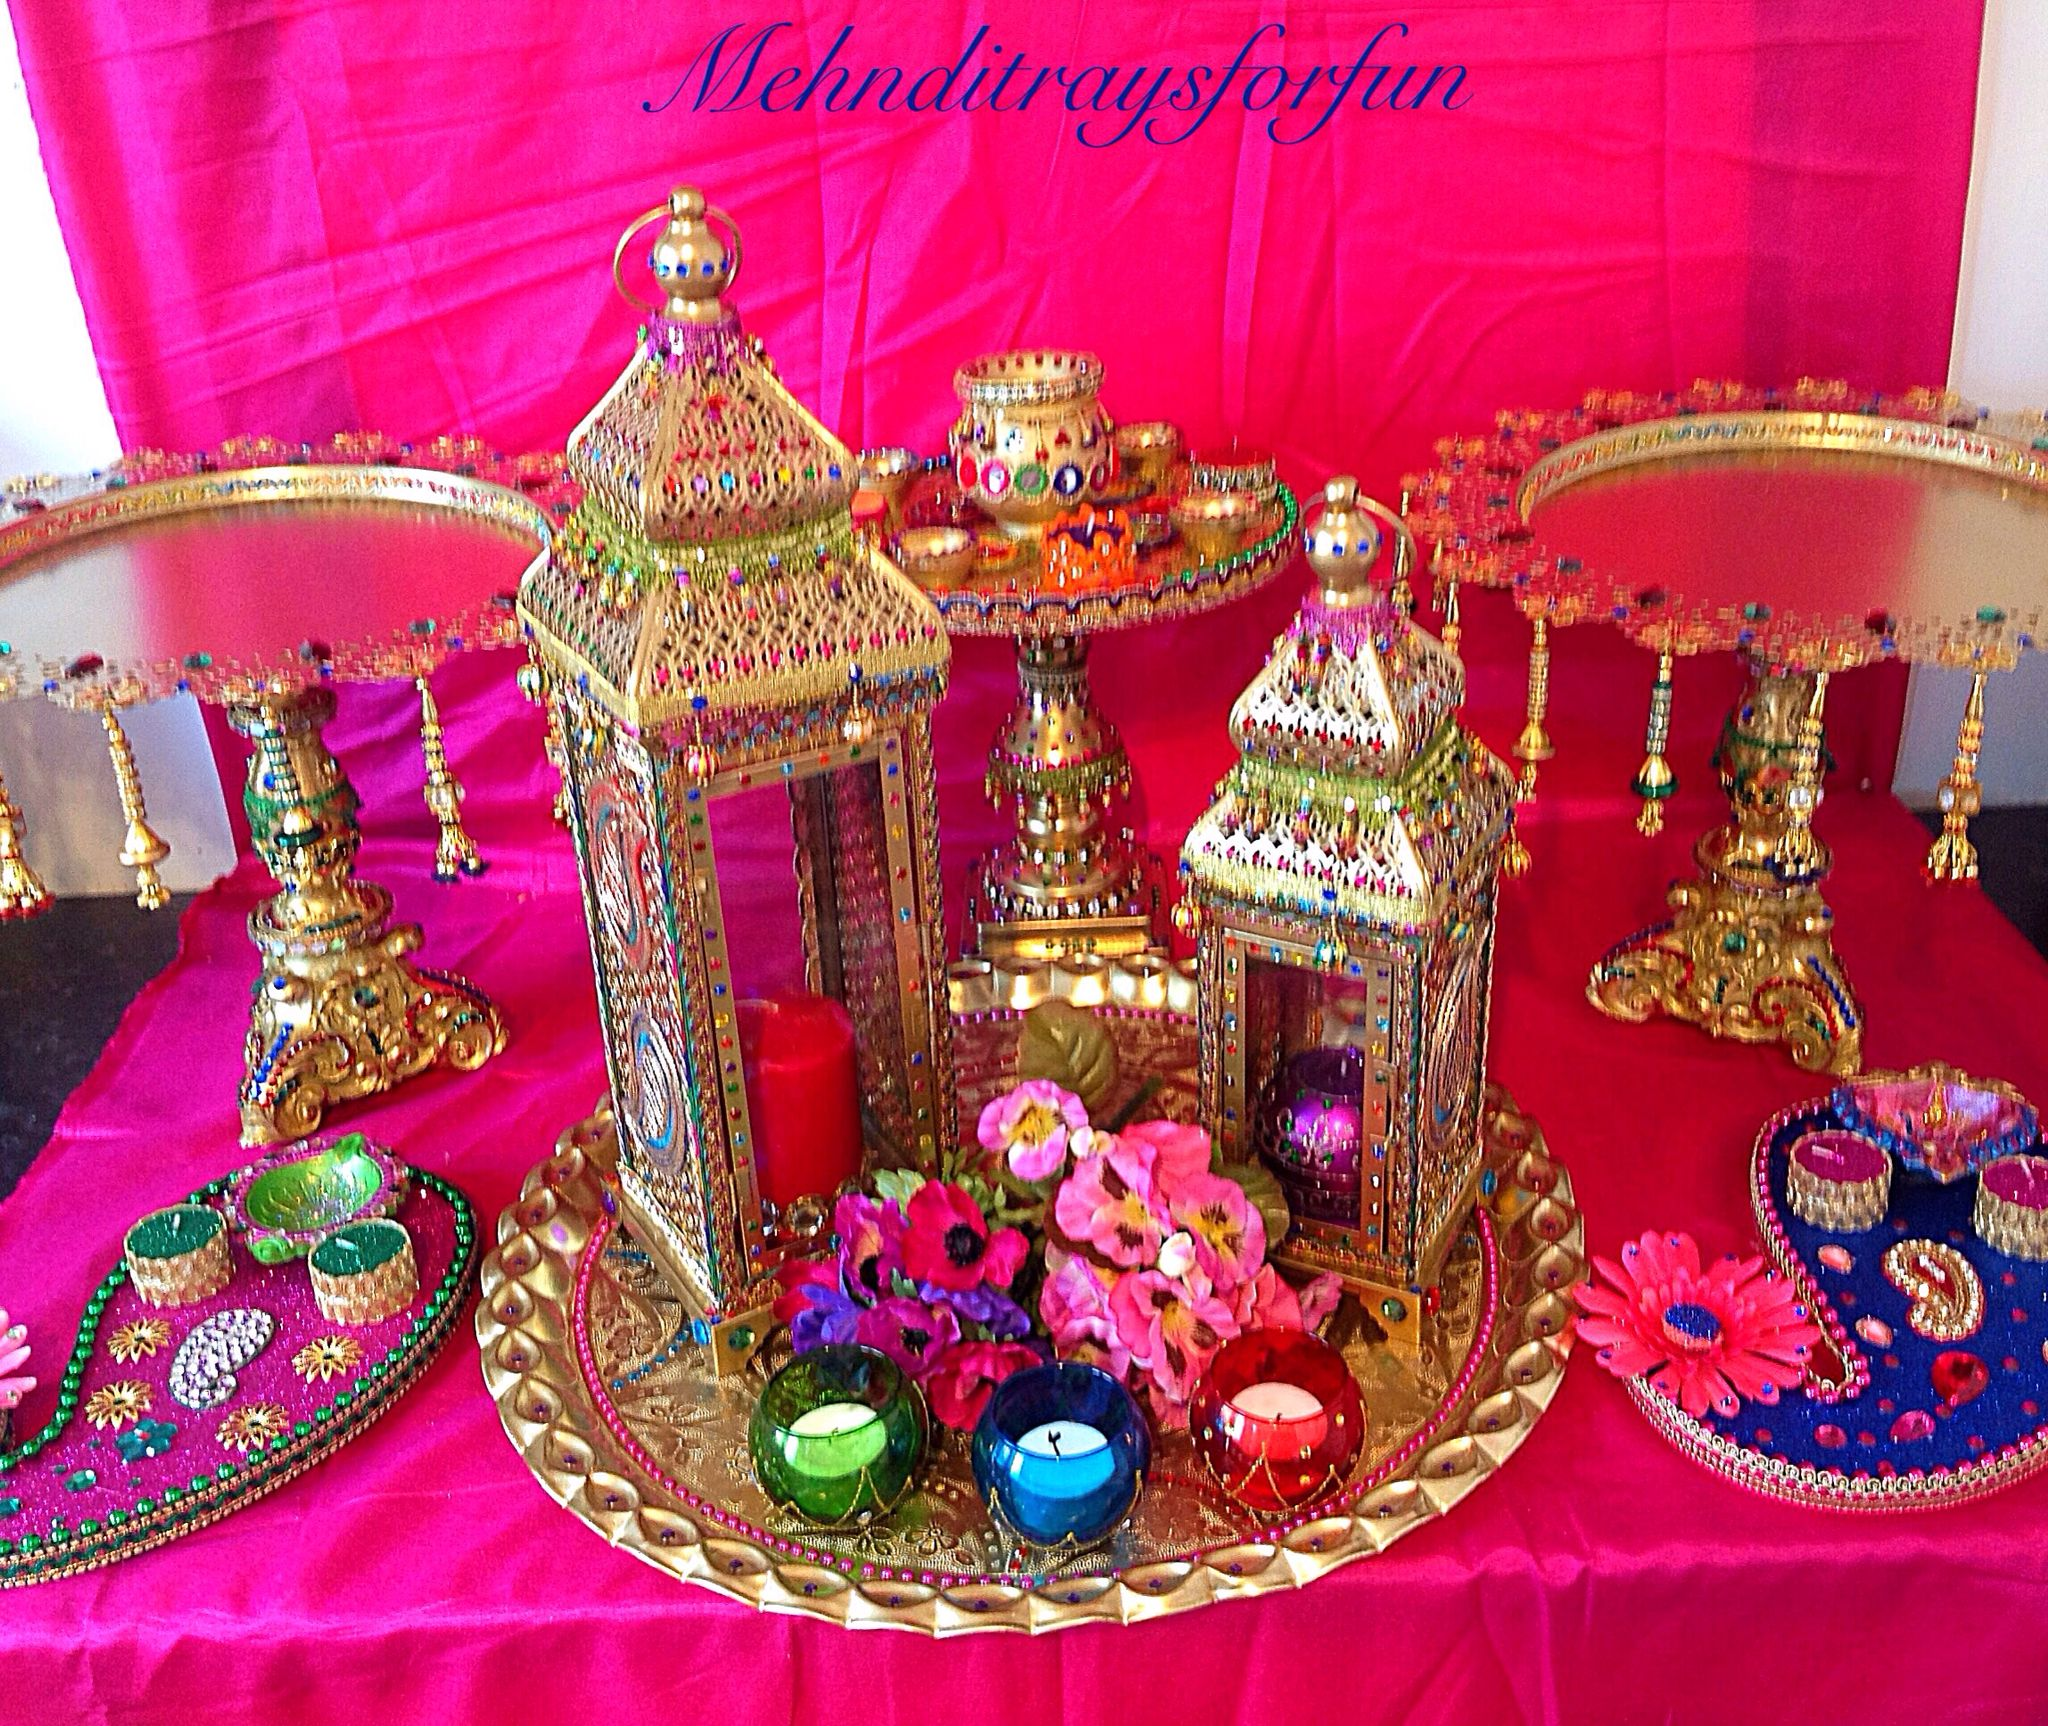 Mehndi Party Entertainment Ideas : Moroccan themed mehndi plates and lanterns collection e